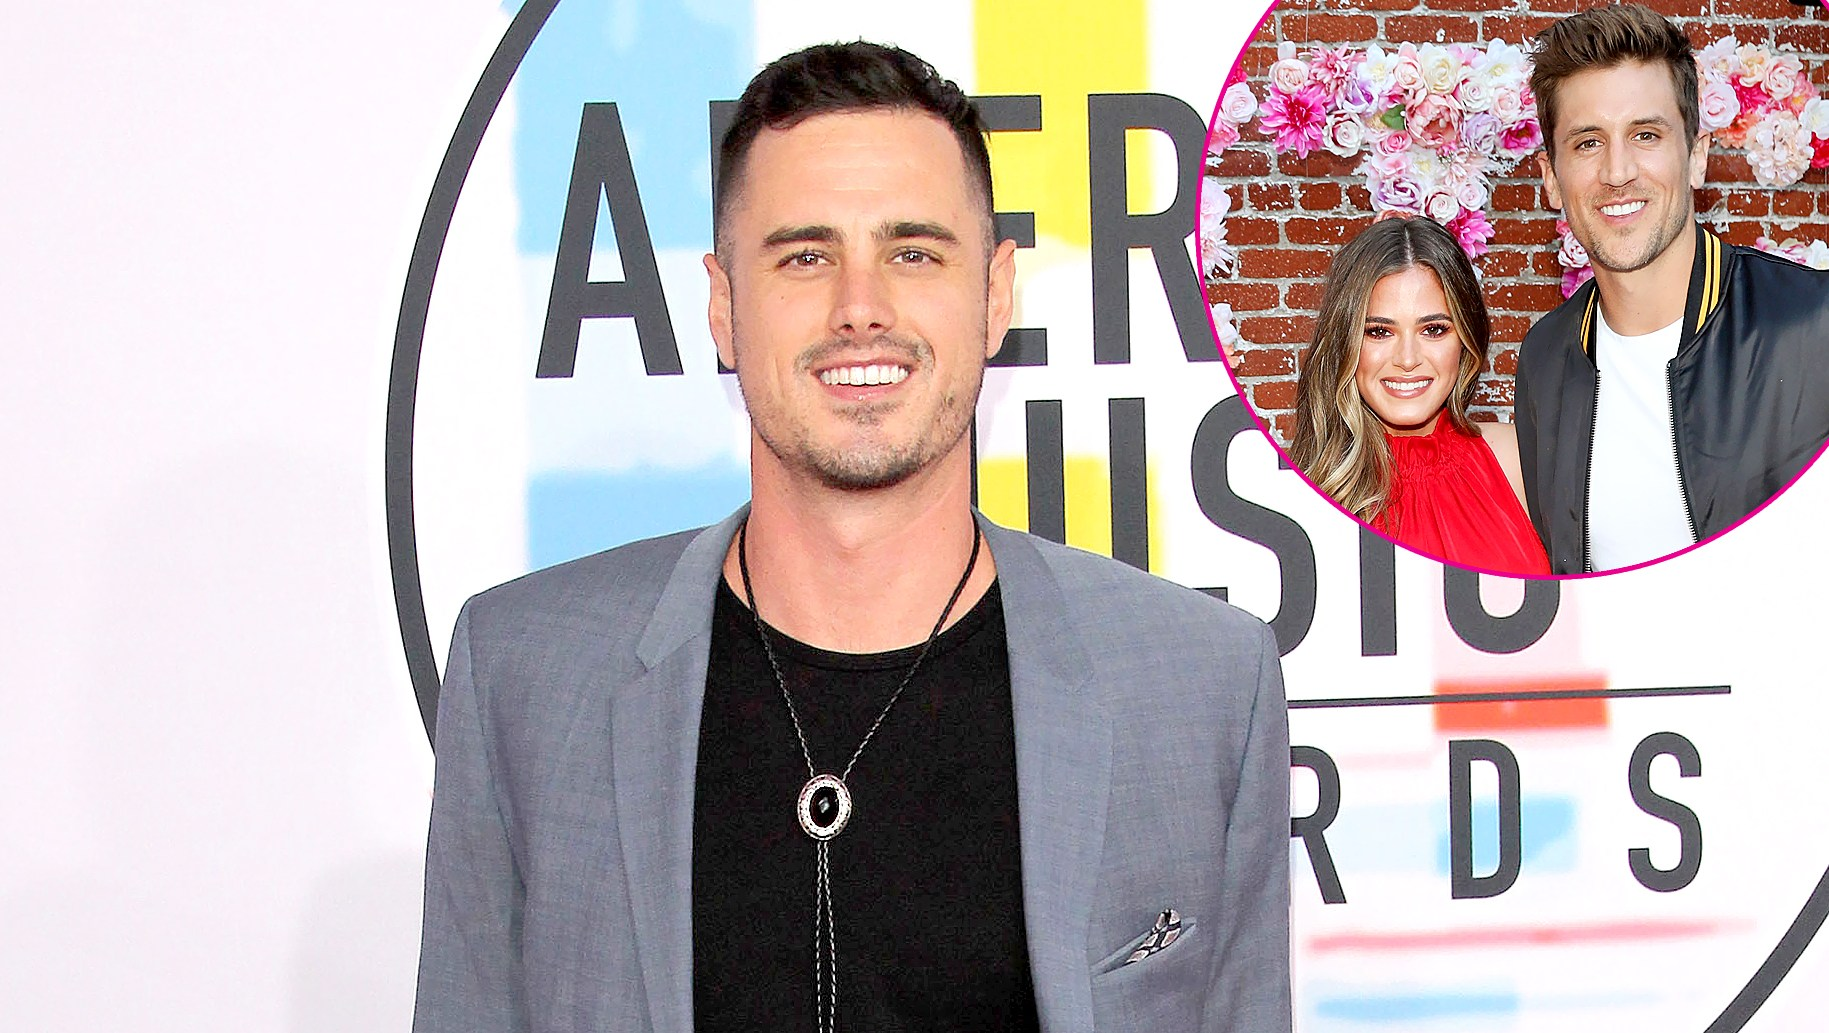 Ben Higgins, JoJo Fletcher and Jordan Rodgers